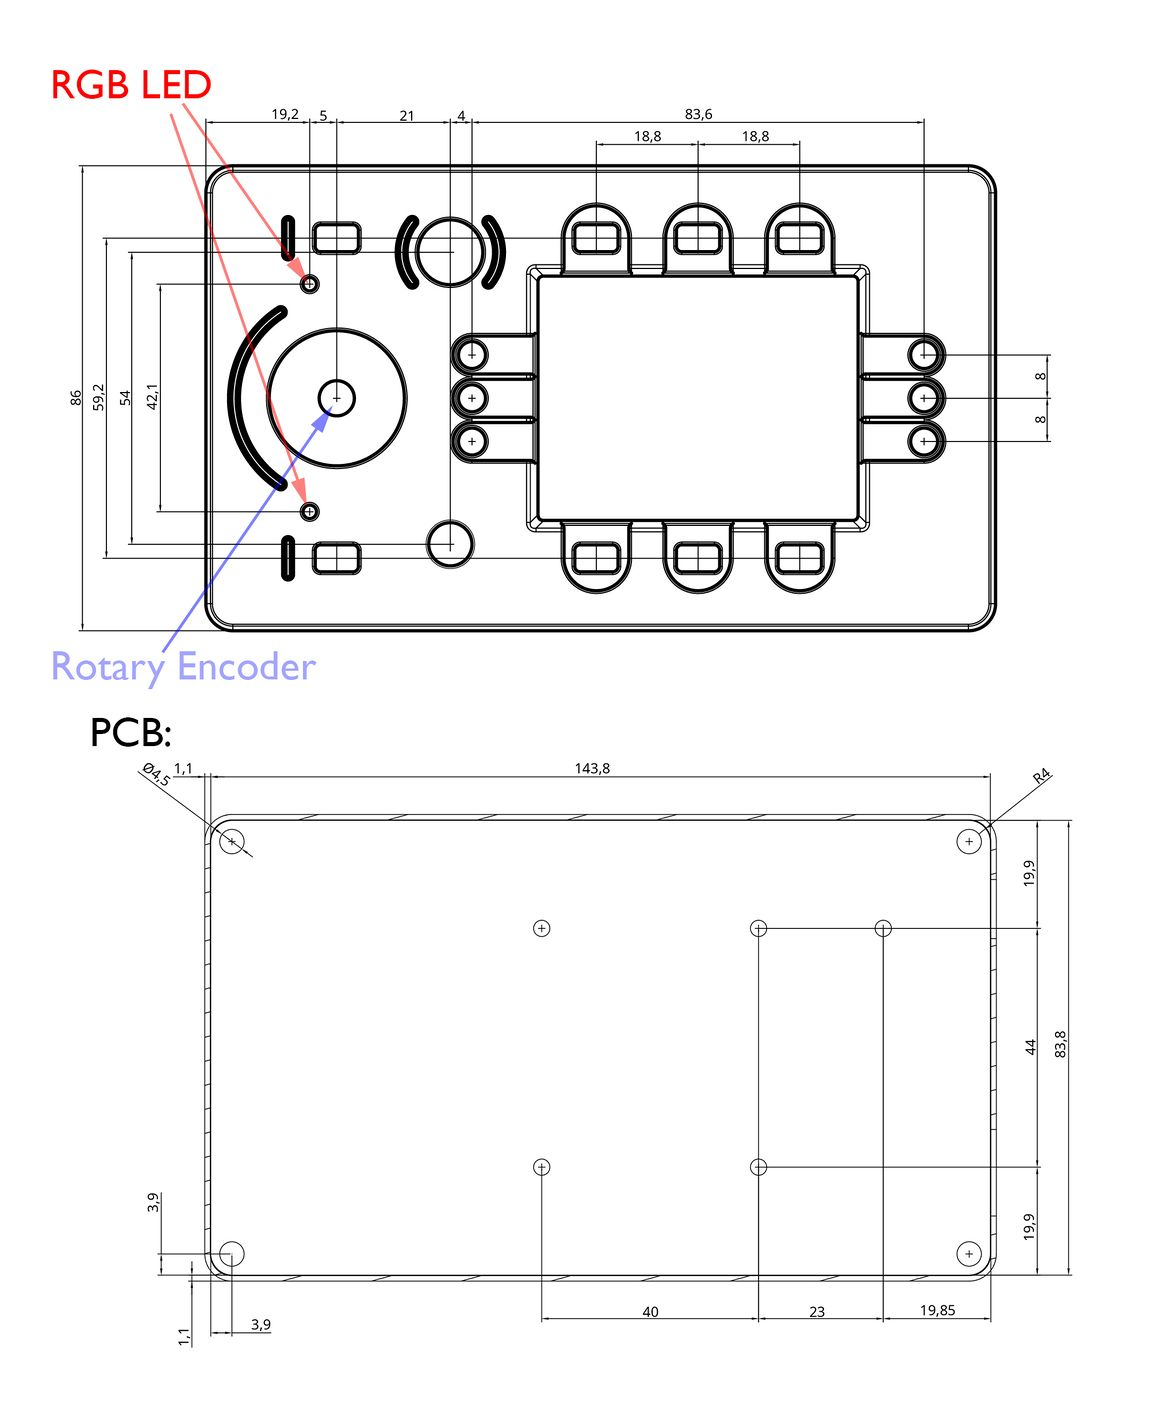 AXIOM-Remote-PCB-V2-Dimensions.jpg